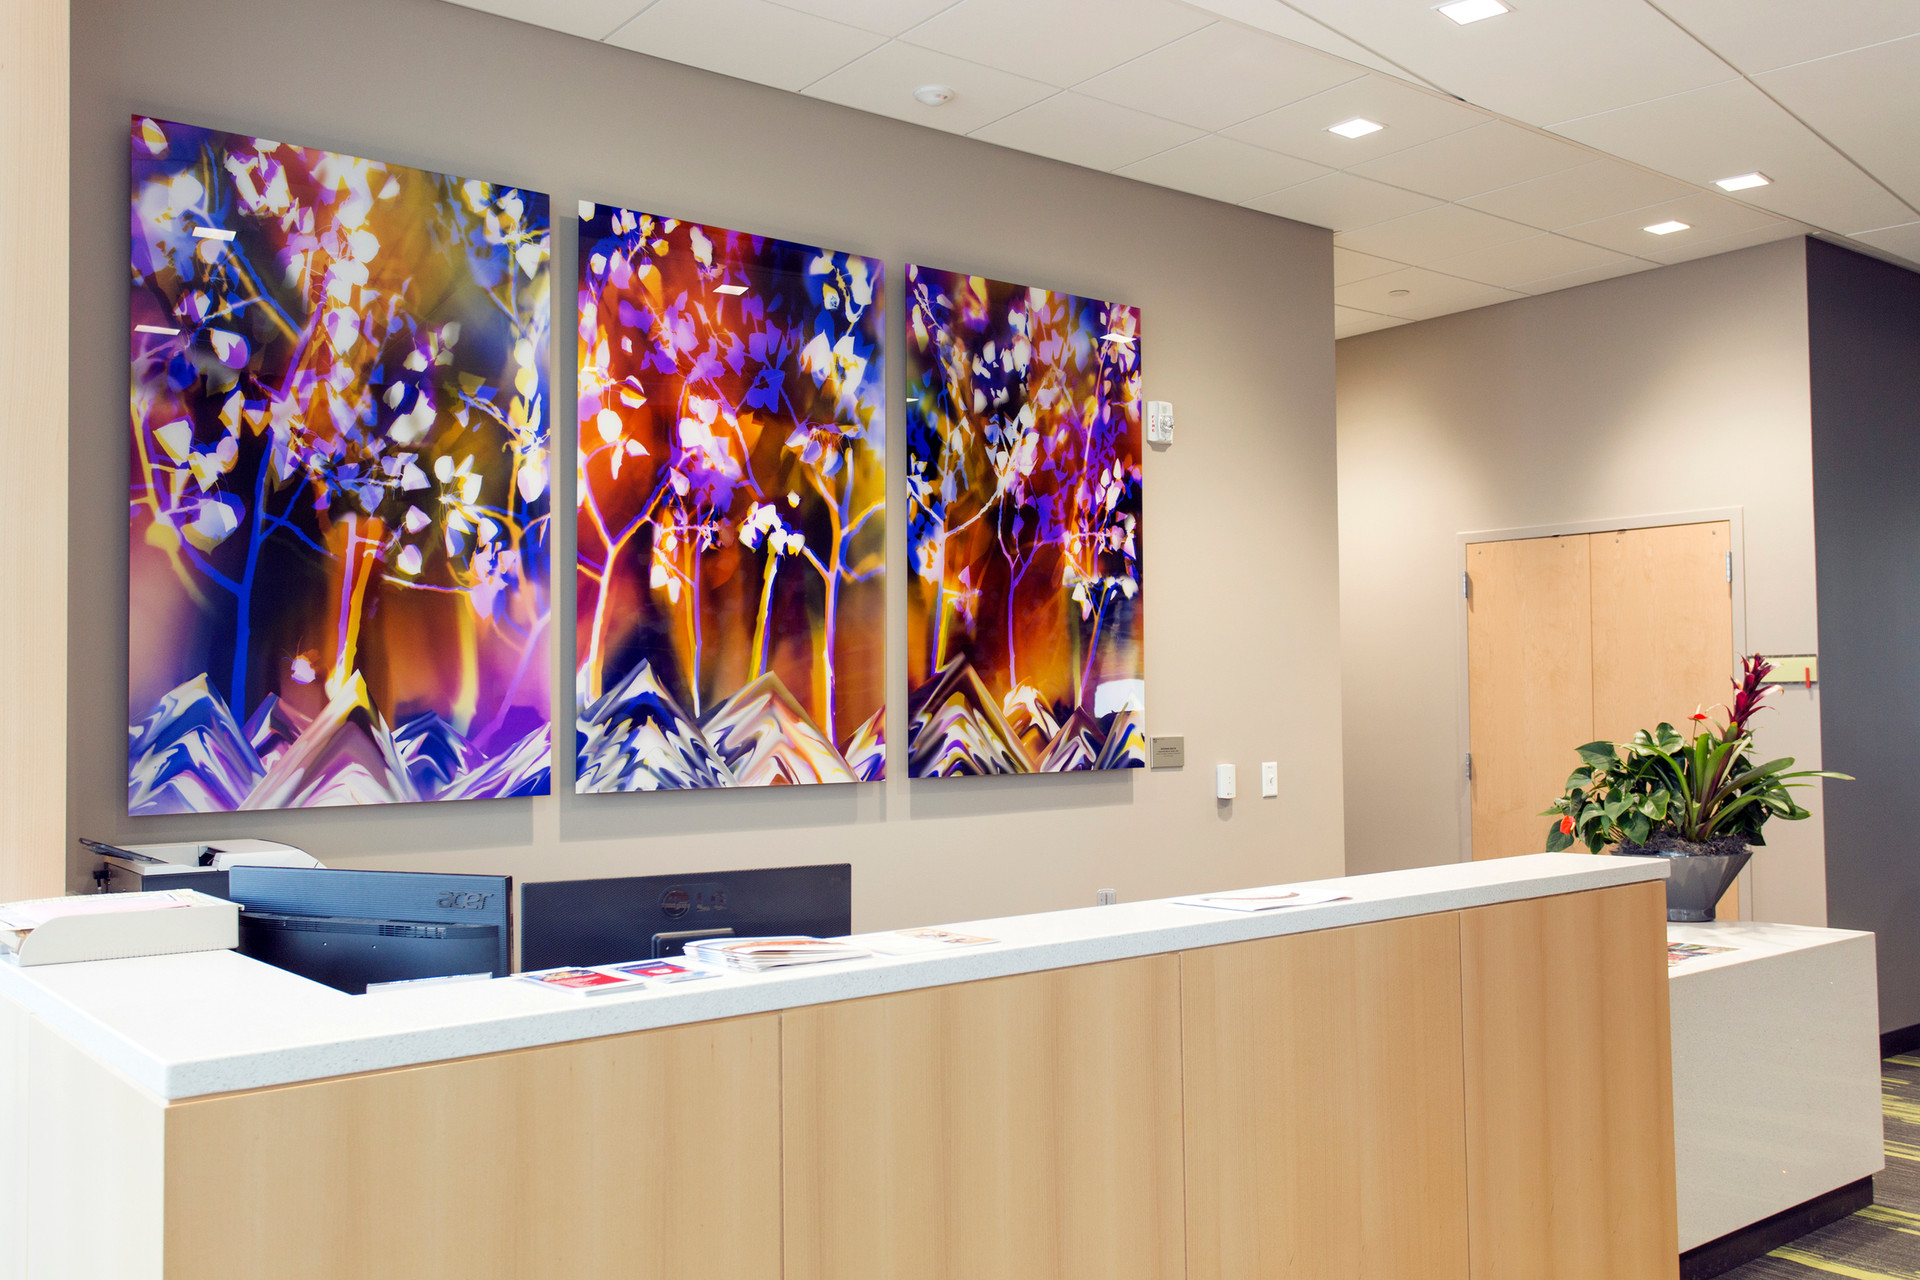 "Inspired by Nature: Pando, 60"" x 38"" (3 60"" x 114"" panels), Commission by Utah Public Art Program, Installed in Noorda School of Dentistry at University of Utah, Salt Lake City, UT"